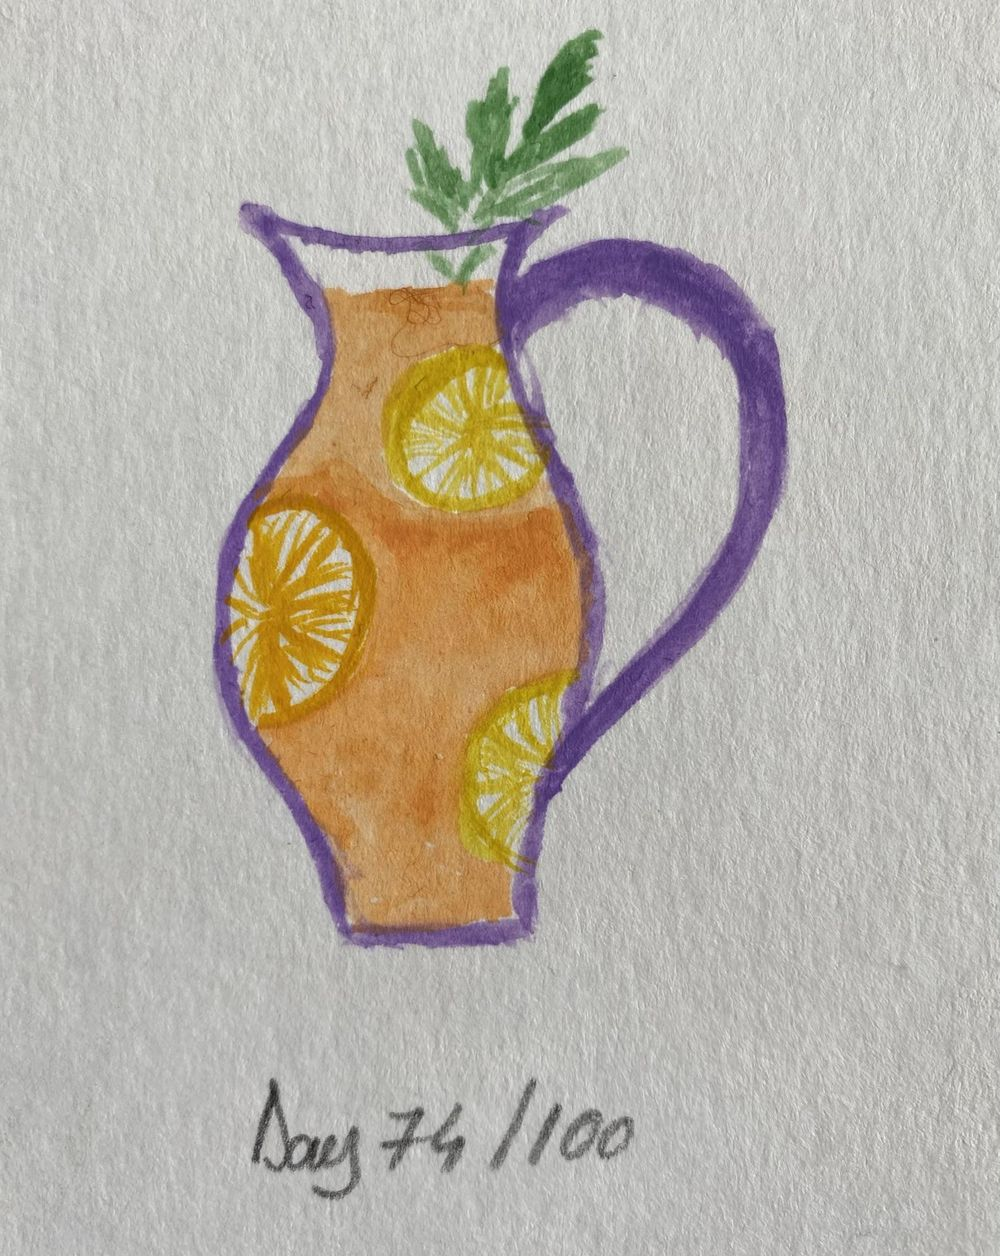 100 Day Watercolor Challenge - image 74 - student project